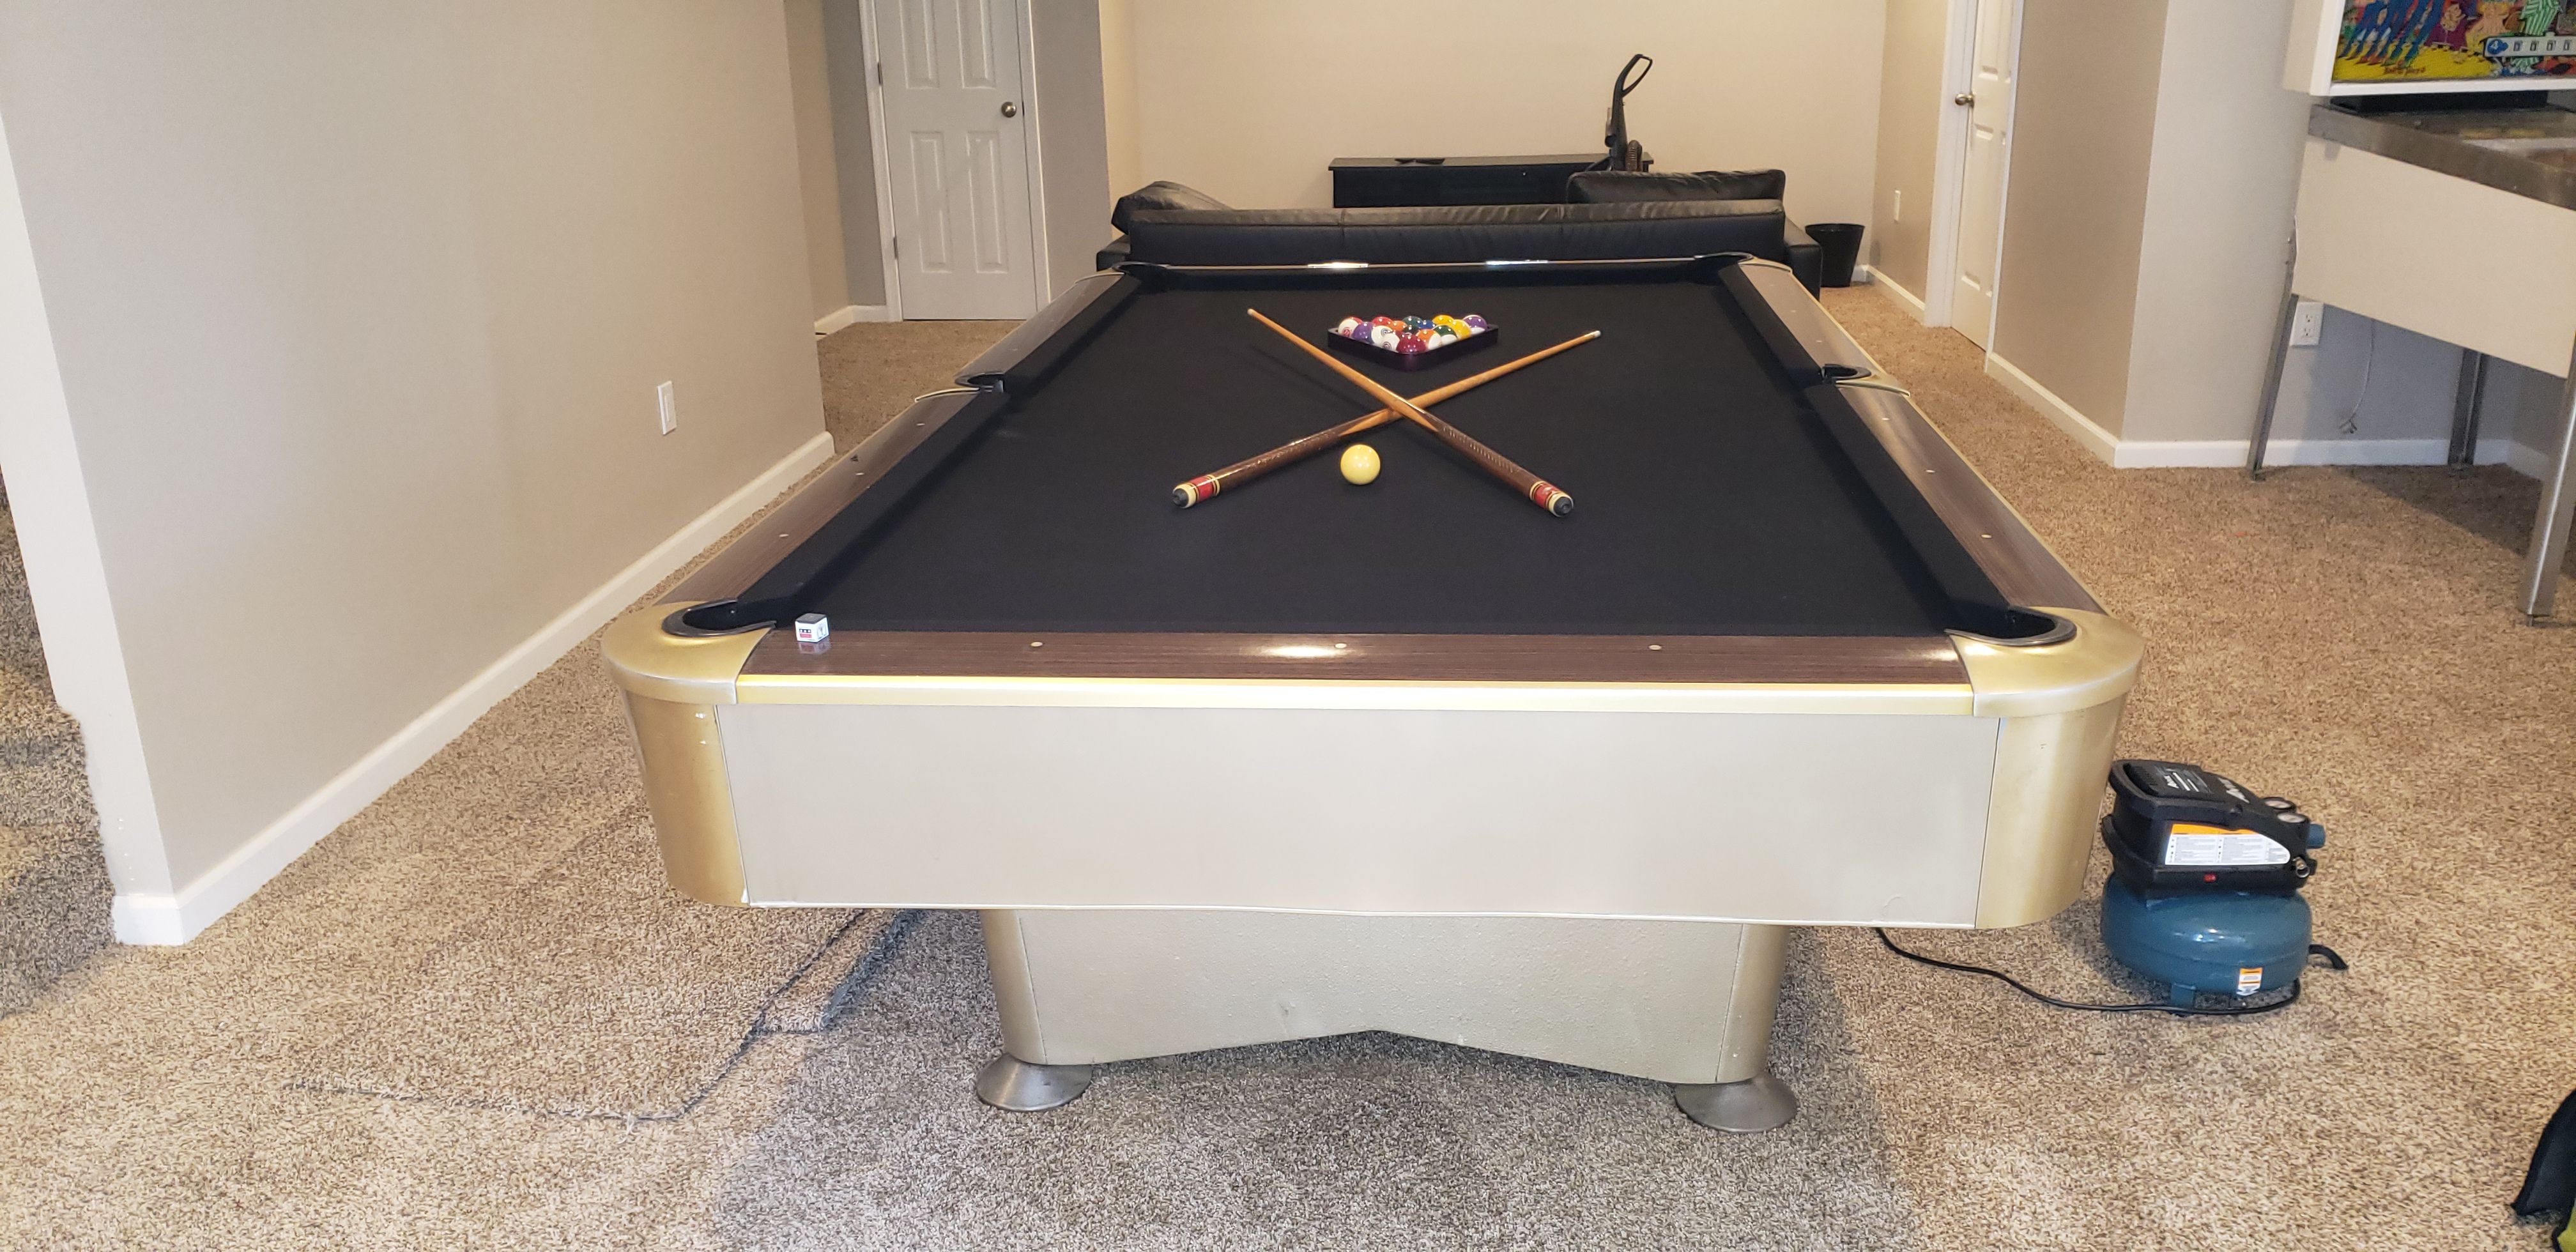 Used pool table for sale in Washington DC Maryland